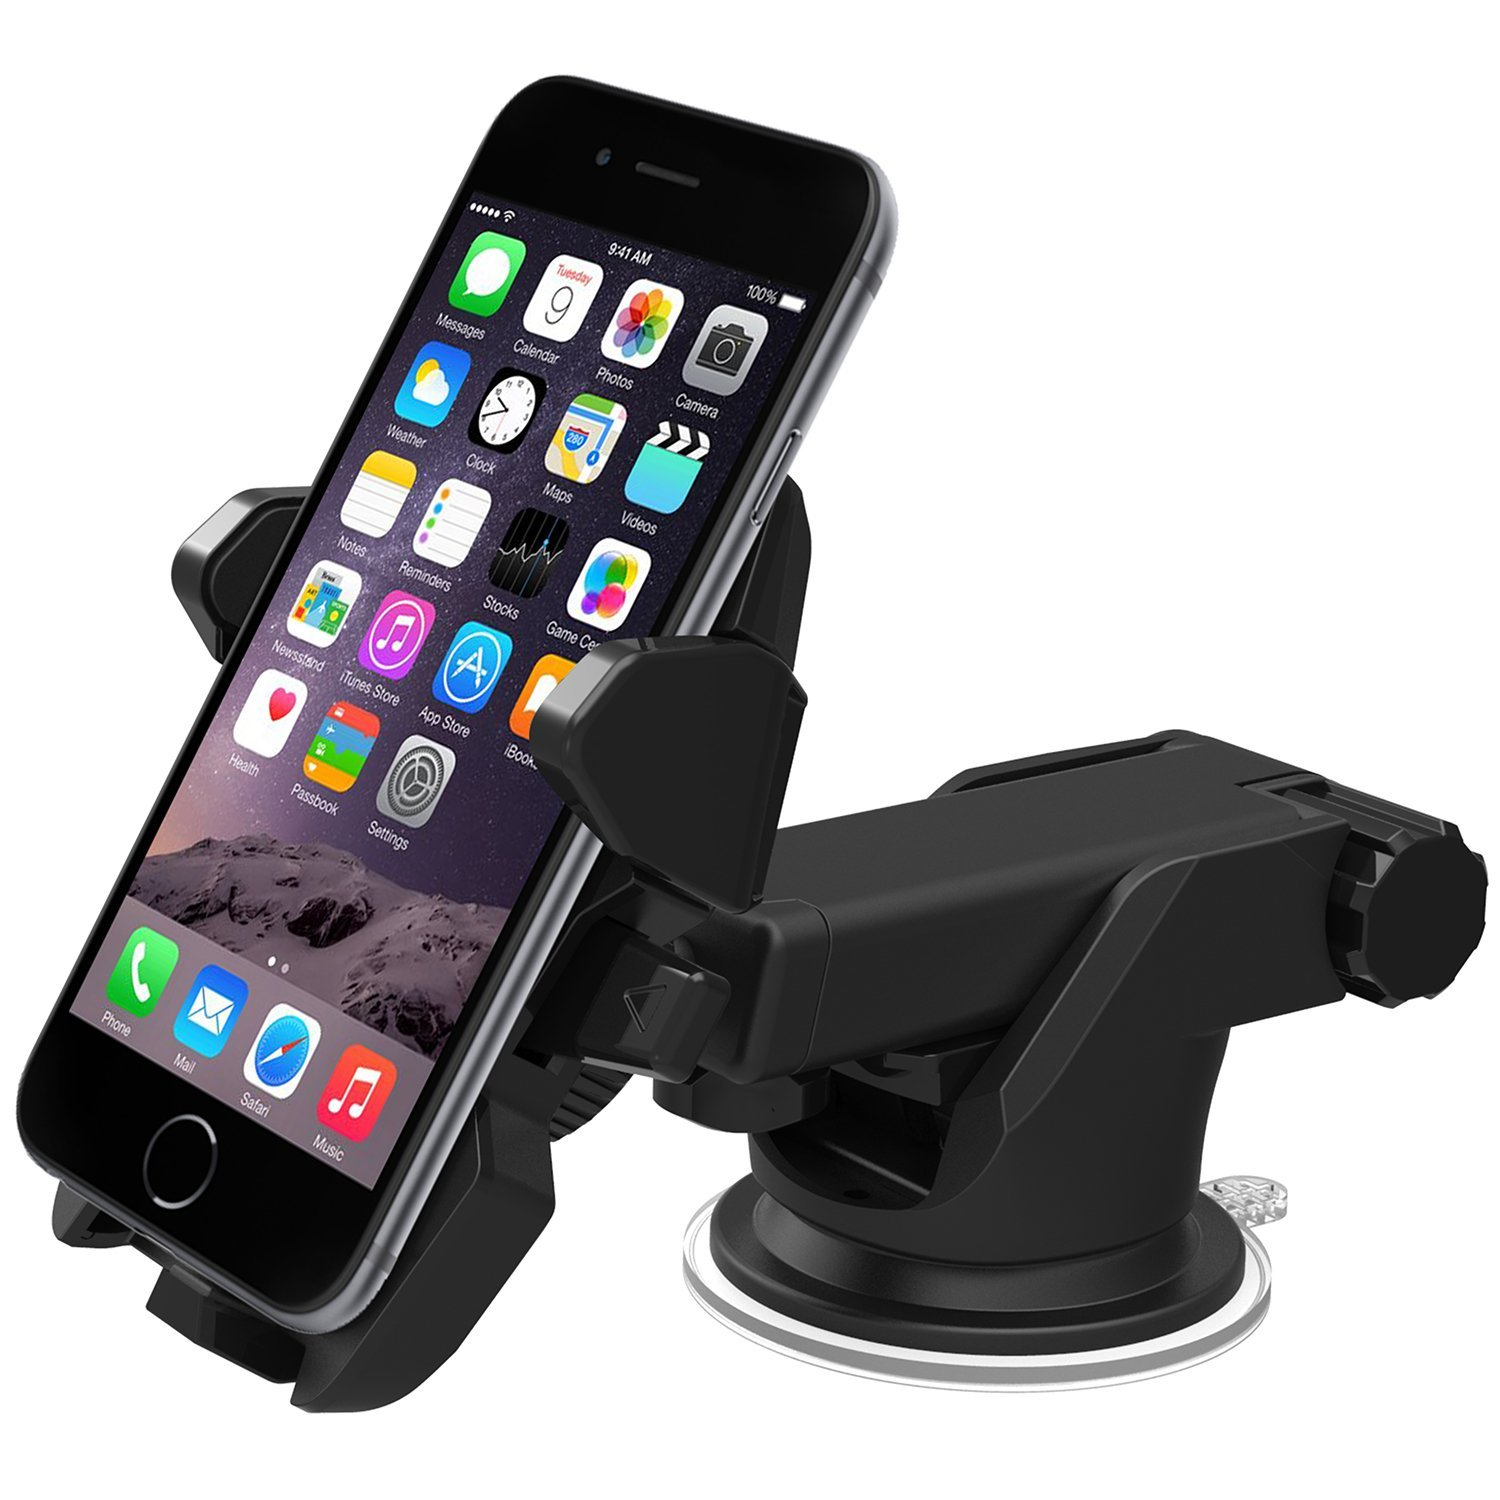 iOttie Easy One Touch 3 Car Mount Smartphone Holder Sale $24.95  Free Shipping from B&H Photo